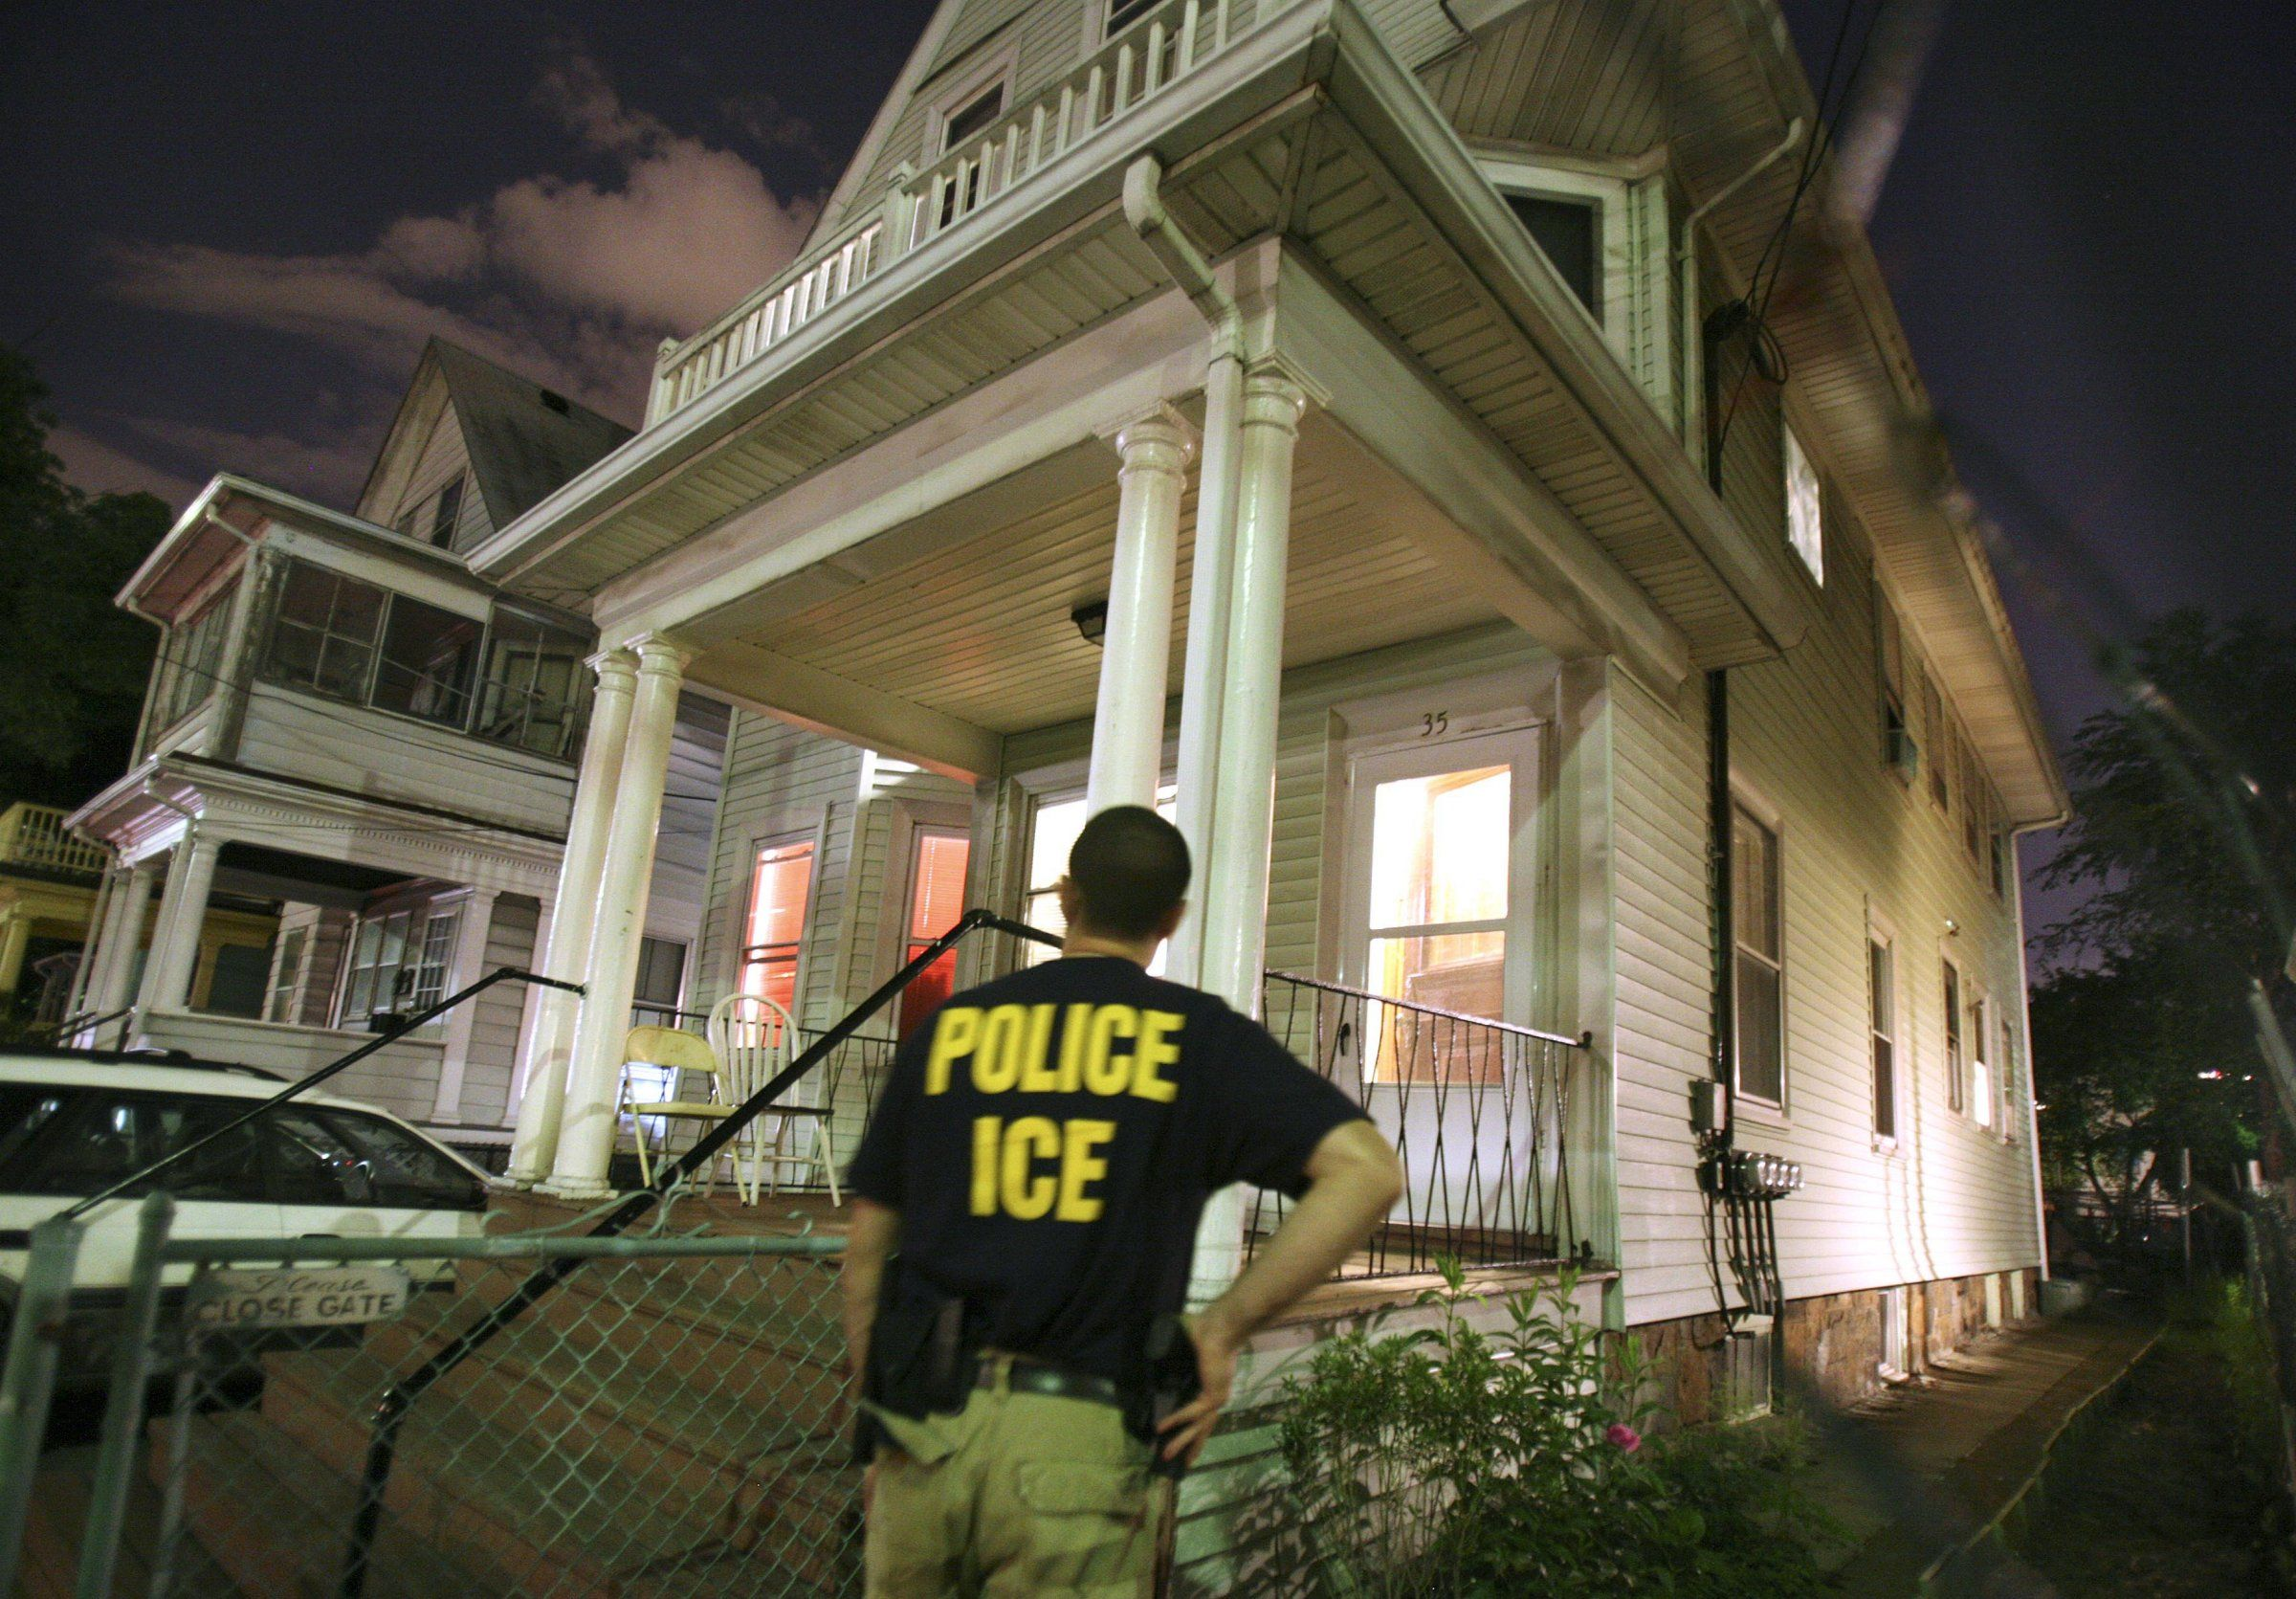 Woman renewing DACA status arrested by ICE Ice agent